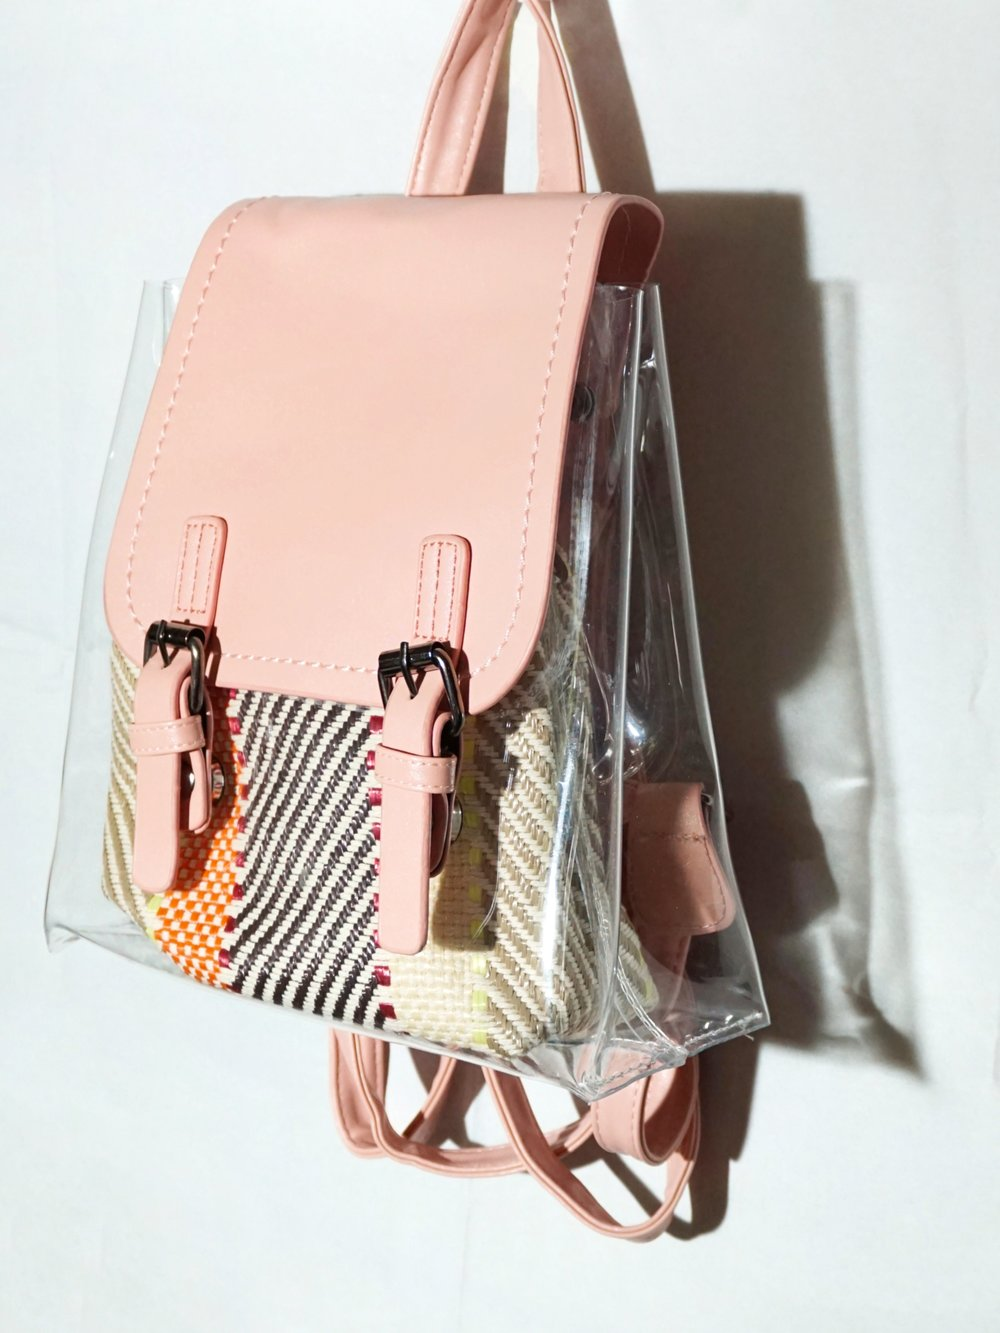 by the way, you can take out the colorful little pouch inside to make your bag 100% transparent. -